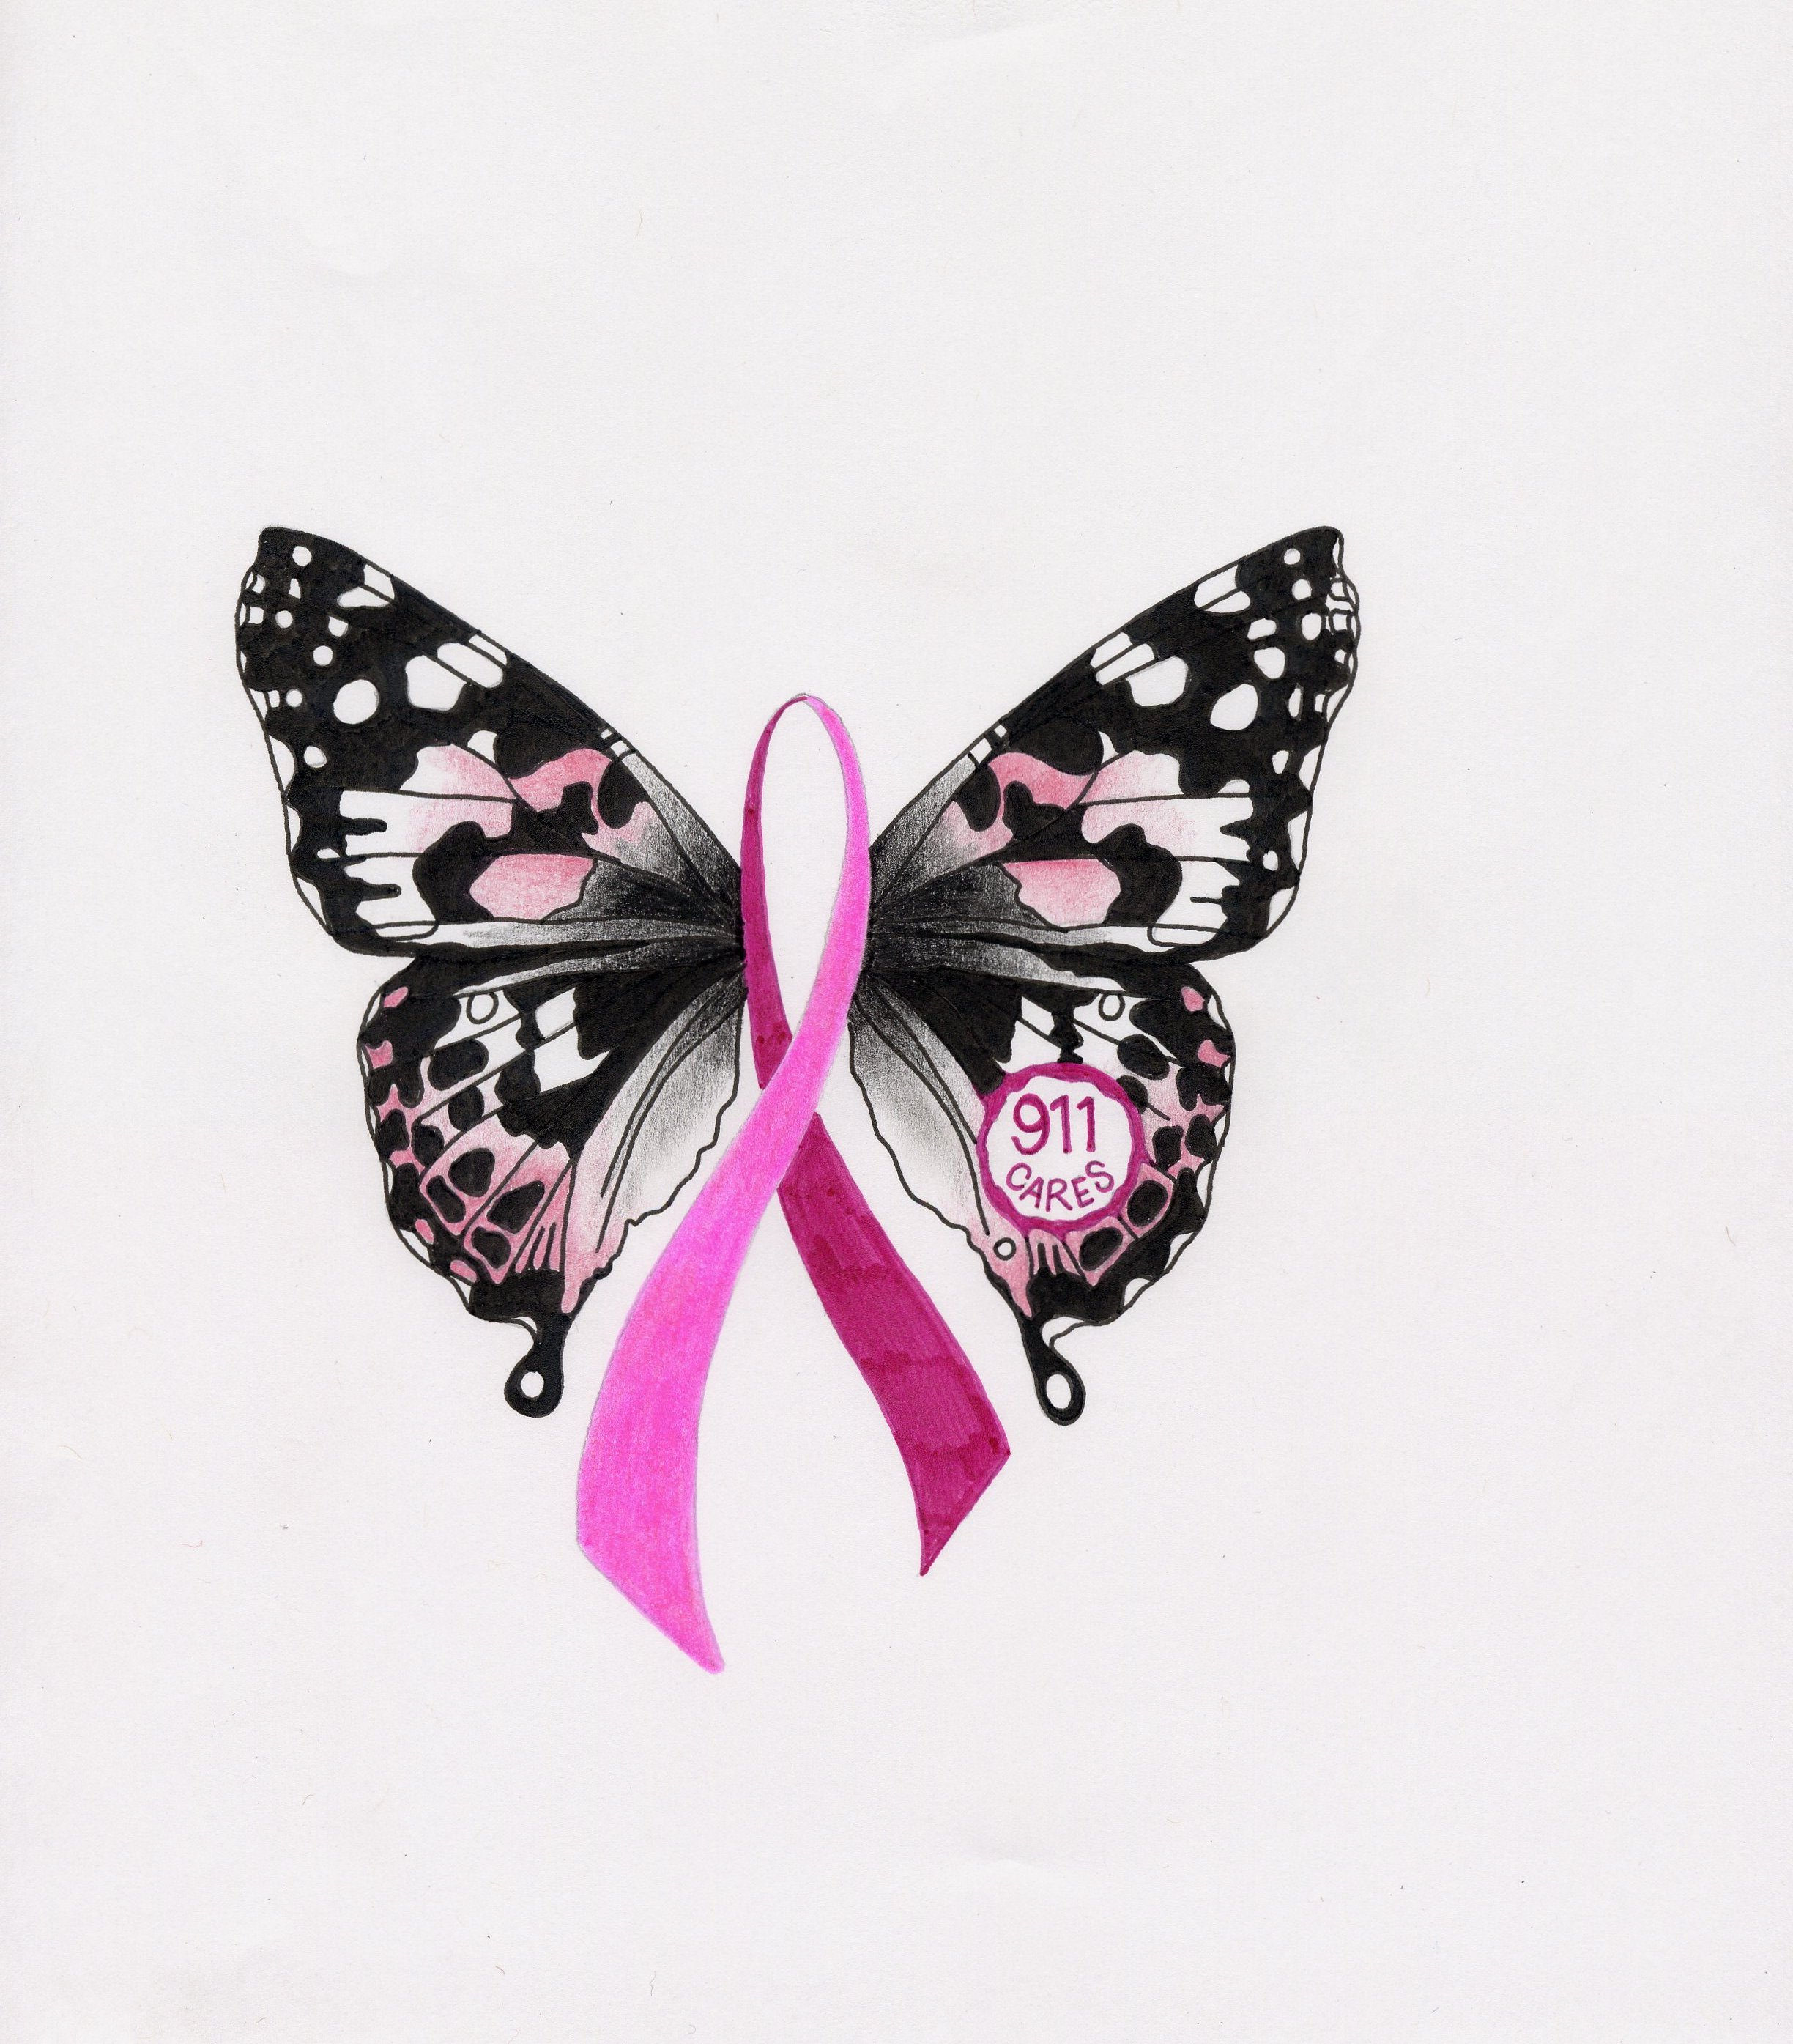 Misha 39 s blue october 2011 for Breast cancer butterfly tattoos